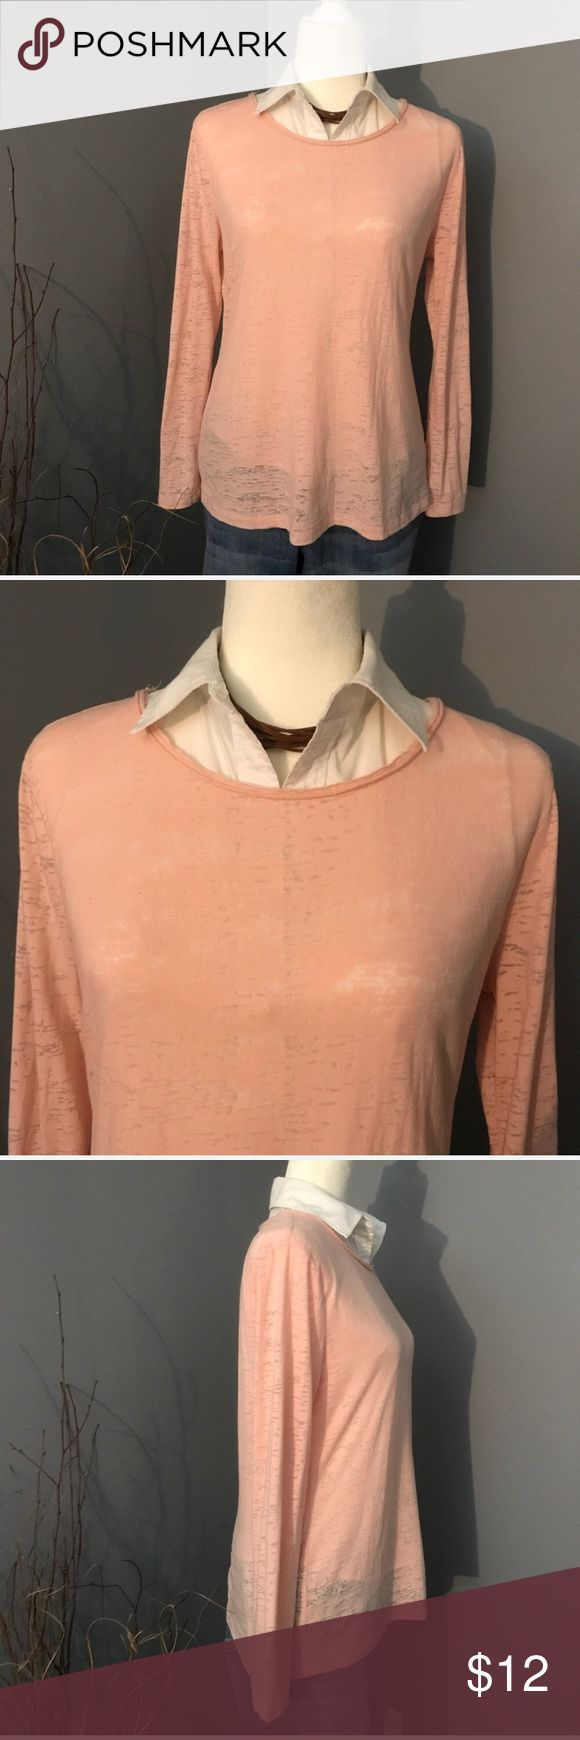 Light Pink Long Sleeve Burnout Tee You'll be pretty in pink with this lightweight burnout tee. Perfect for layering. Pair with your favorite jeans and boots to complete the look! Excellent condition. Size L Cato Tops Tees - Long Sleeve